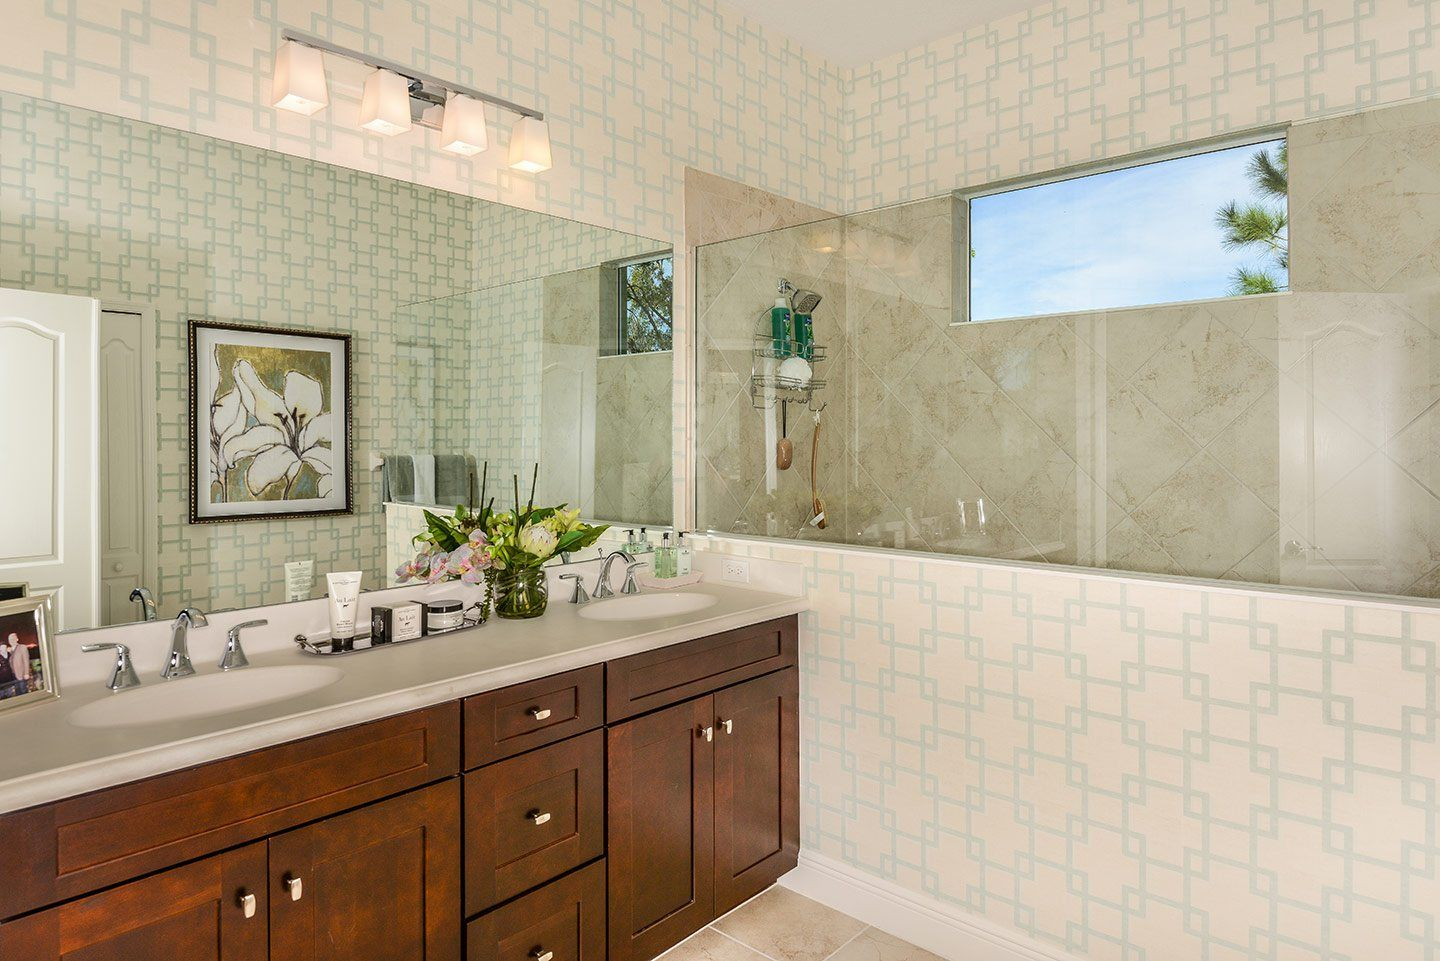 Bathroom featured in the Endless Summer 3 By Neal Communities in Sarasota-Bradenton, FL